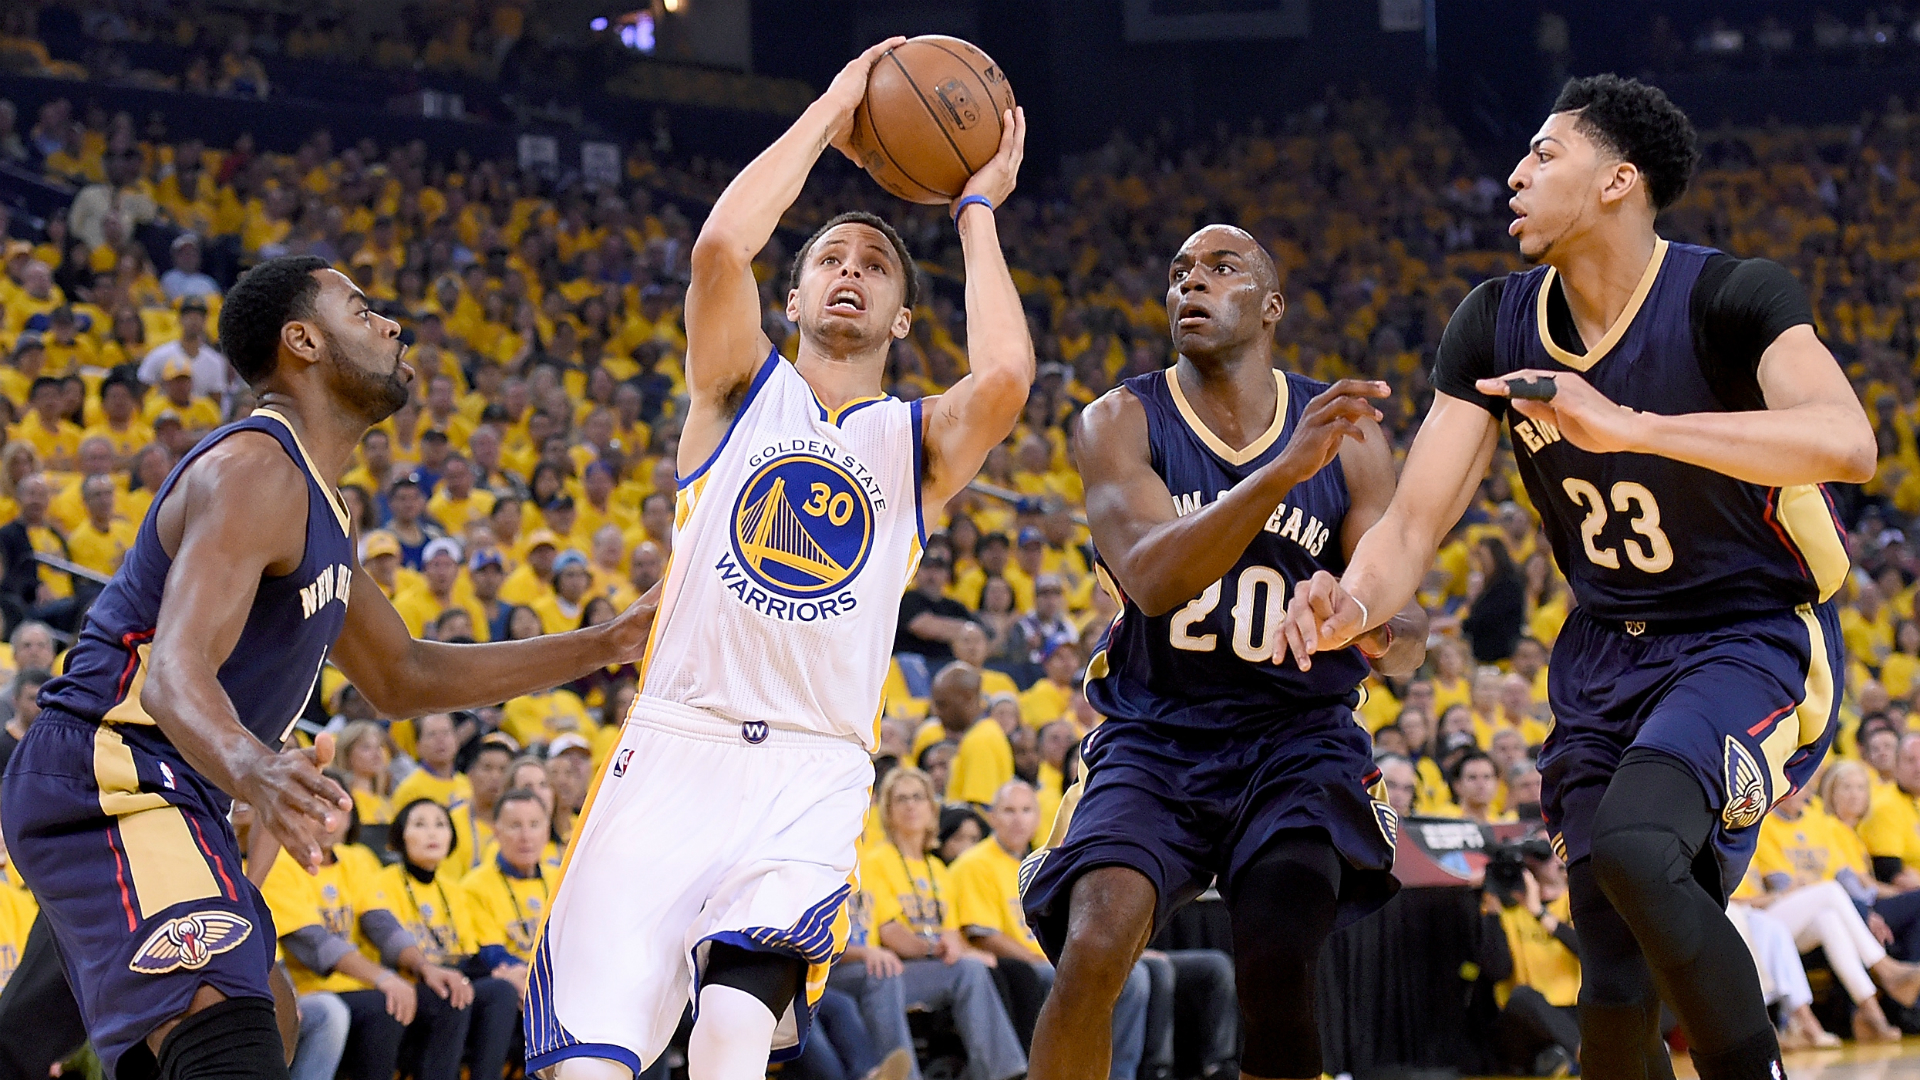 Stephen Curry ignites torch for Warriors' expectations in Game 1